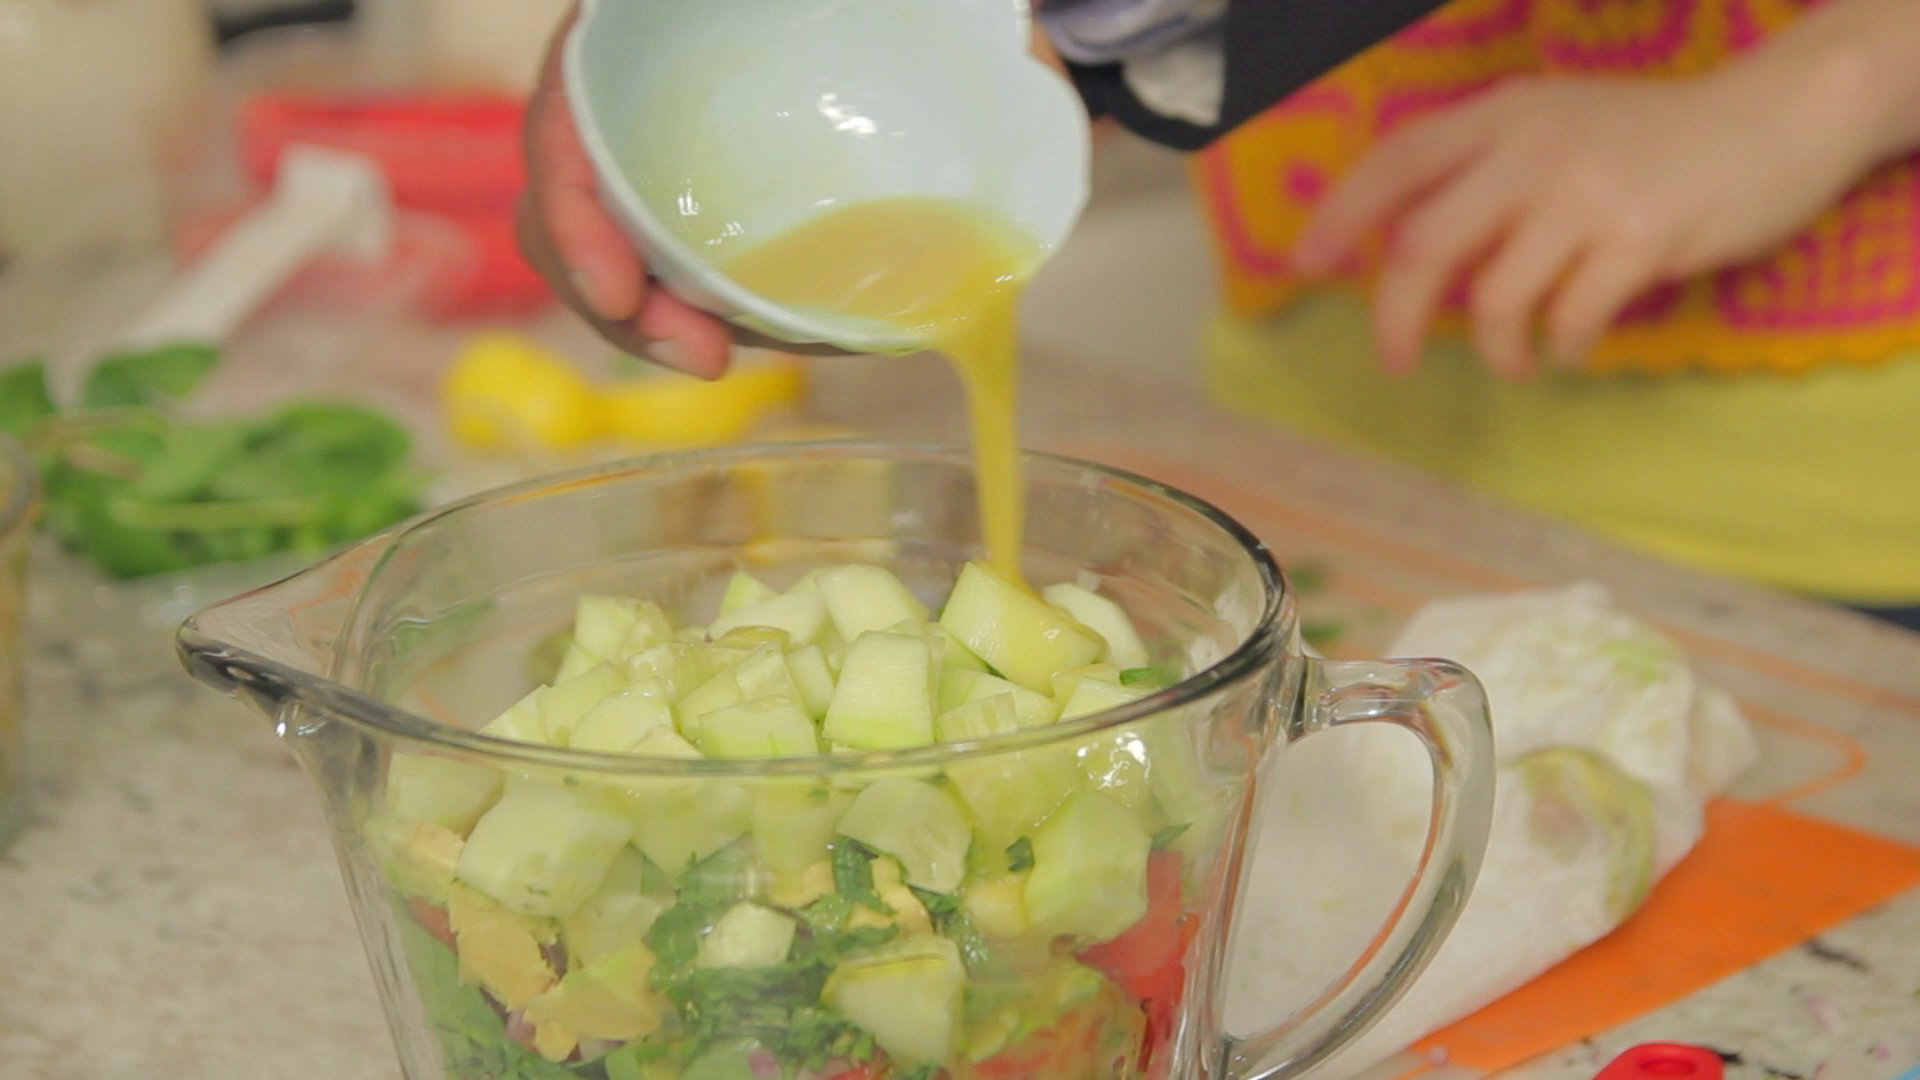 How To Make A Salad Better: Alcohol